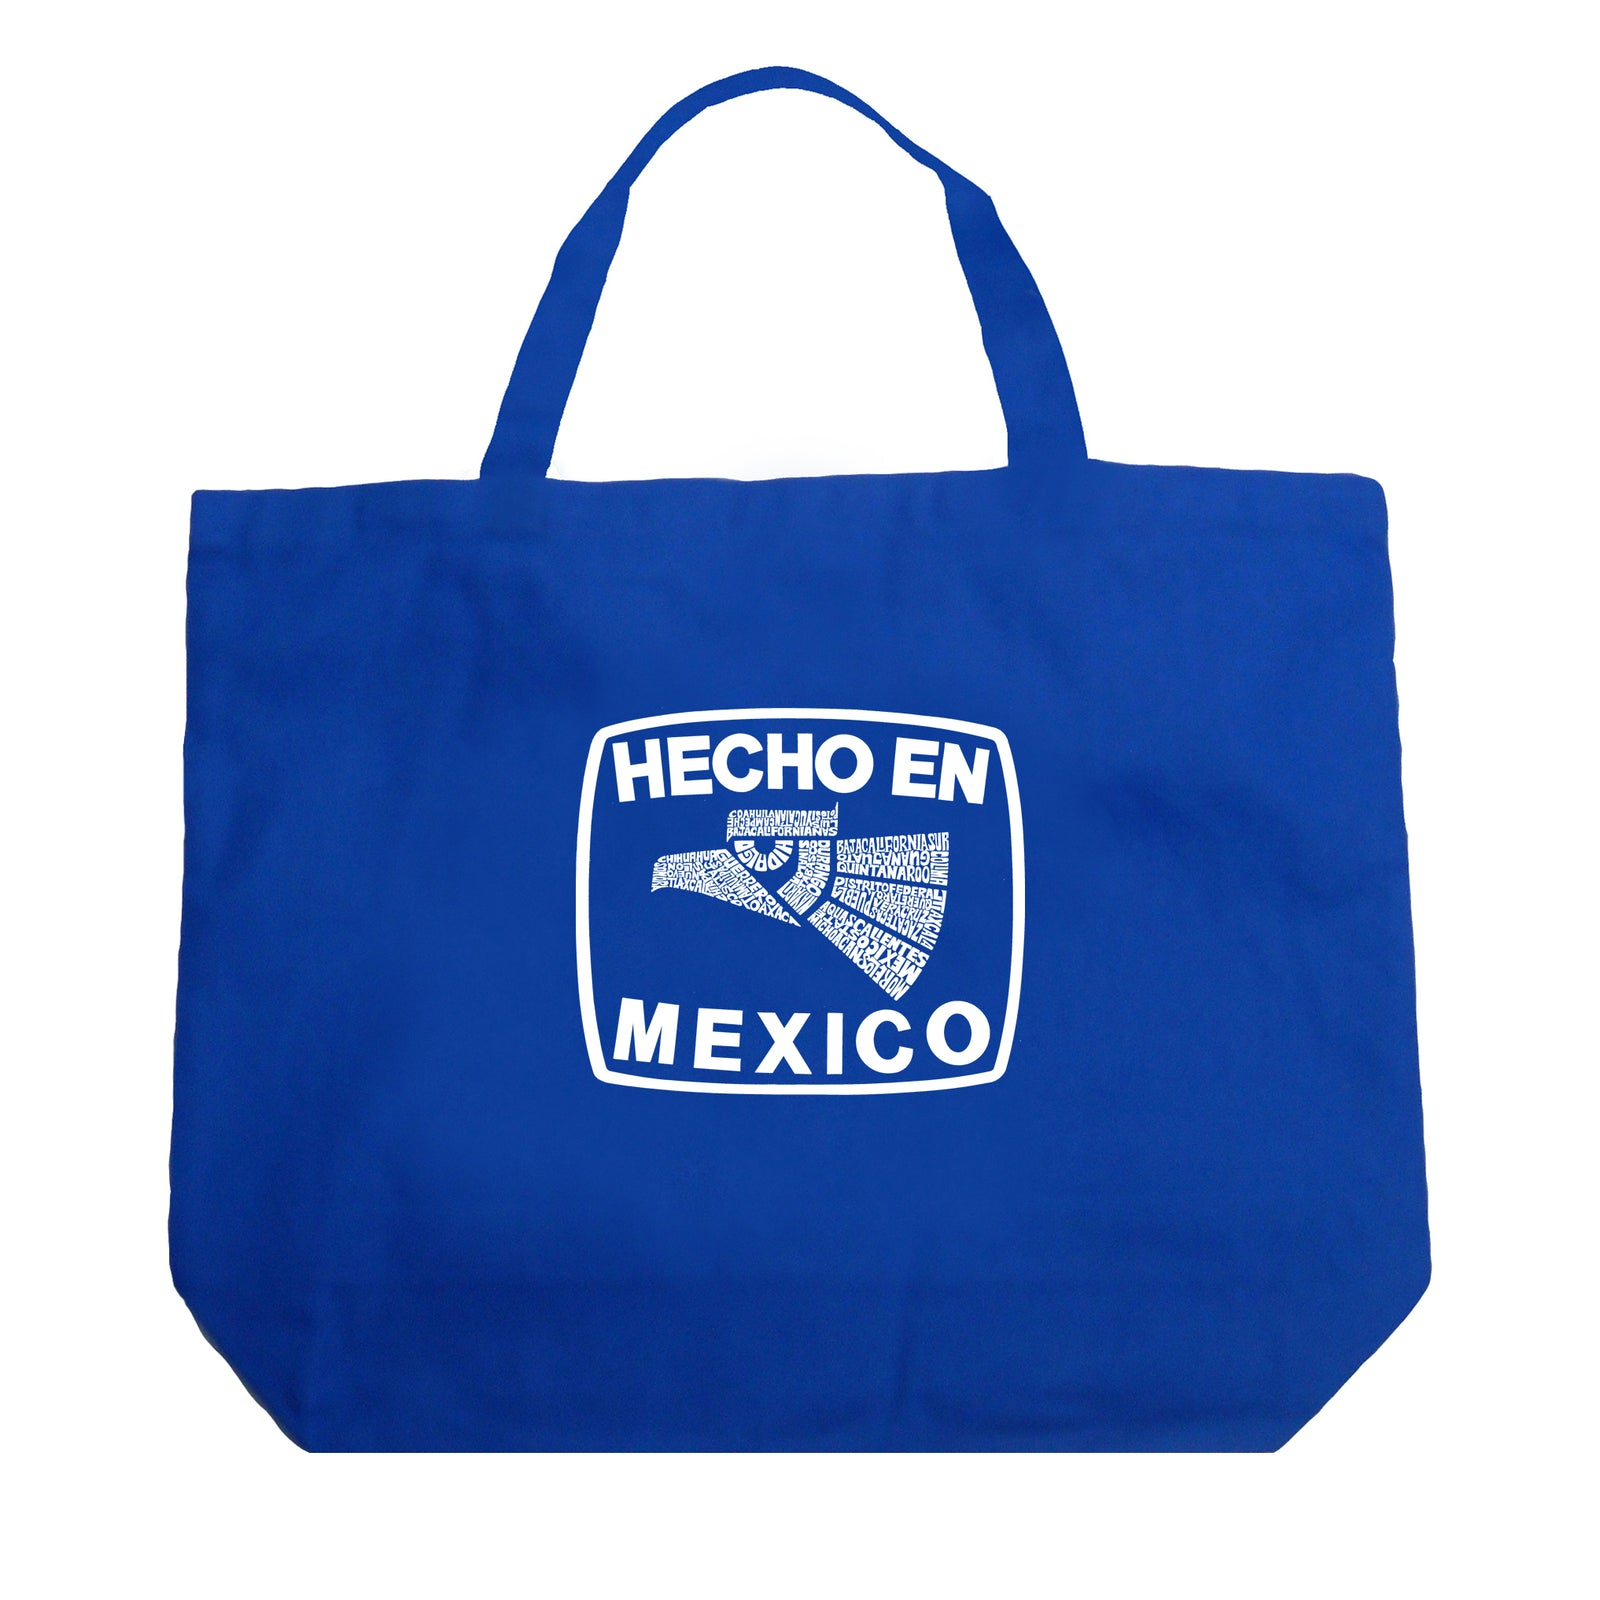 Large Tote Bag - HECHO EN MEXICO